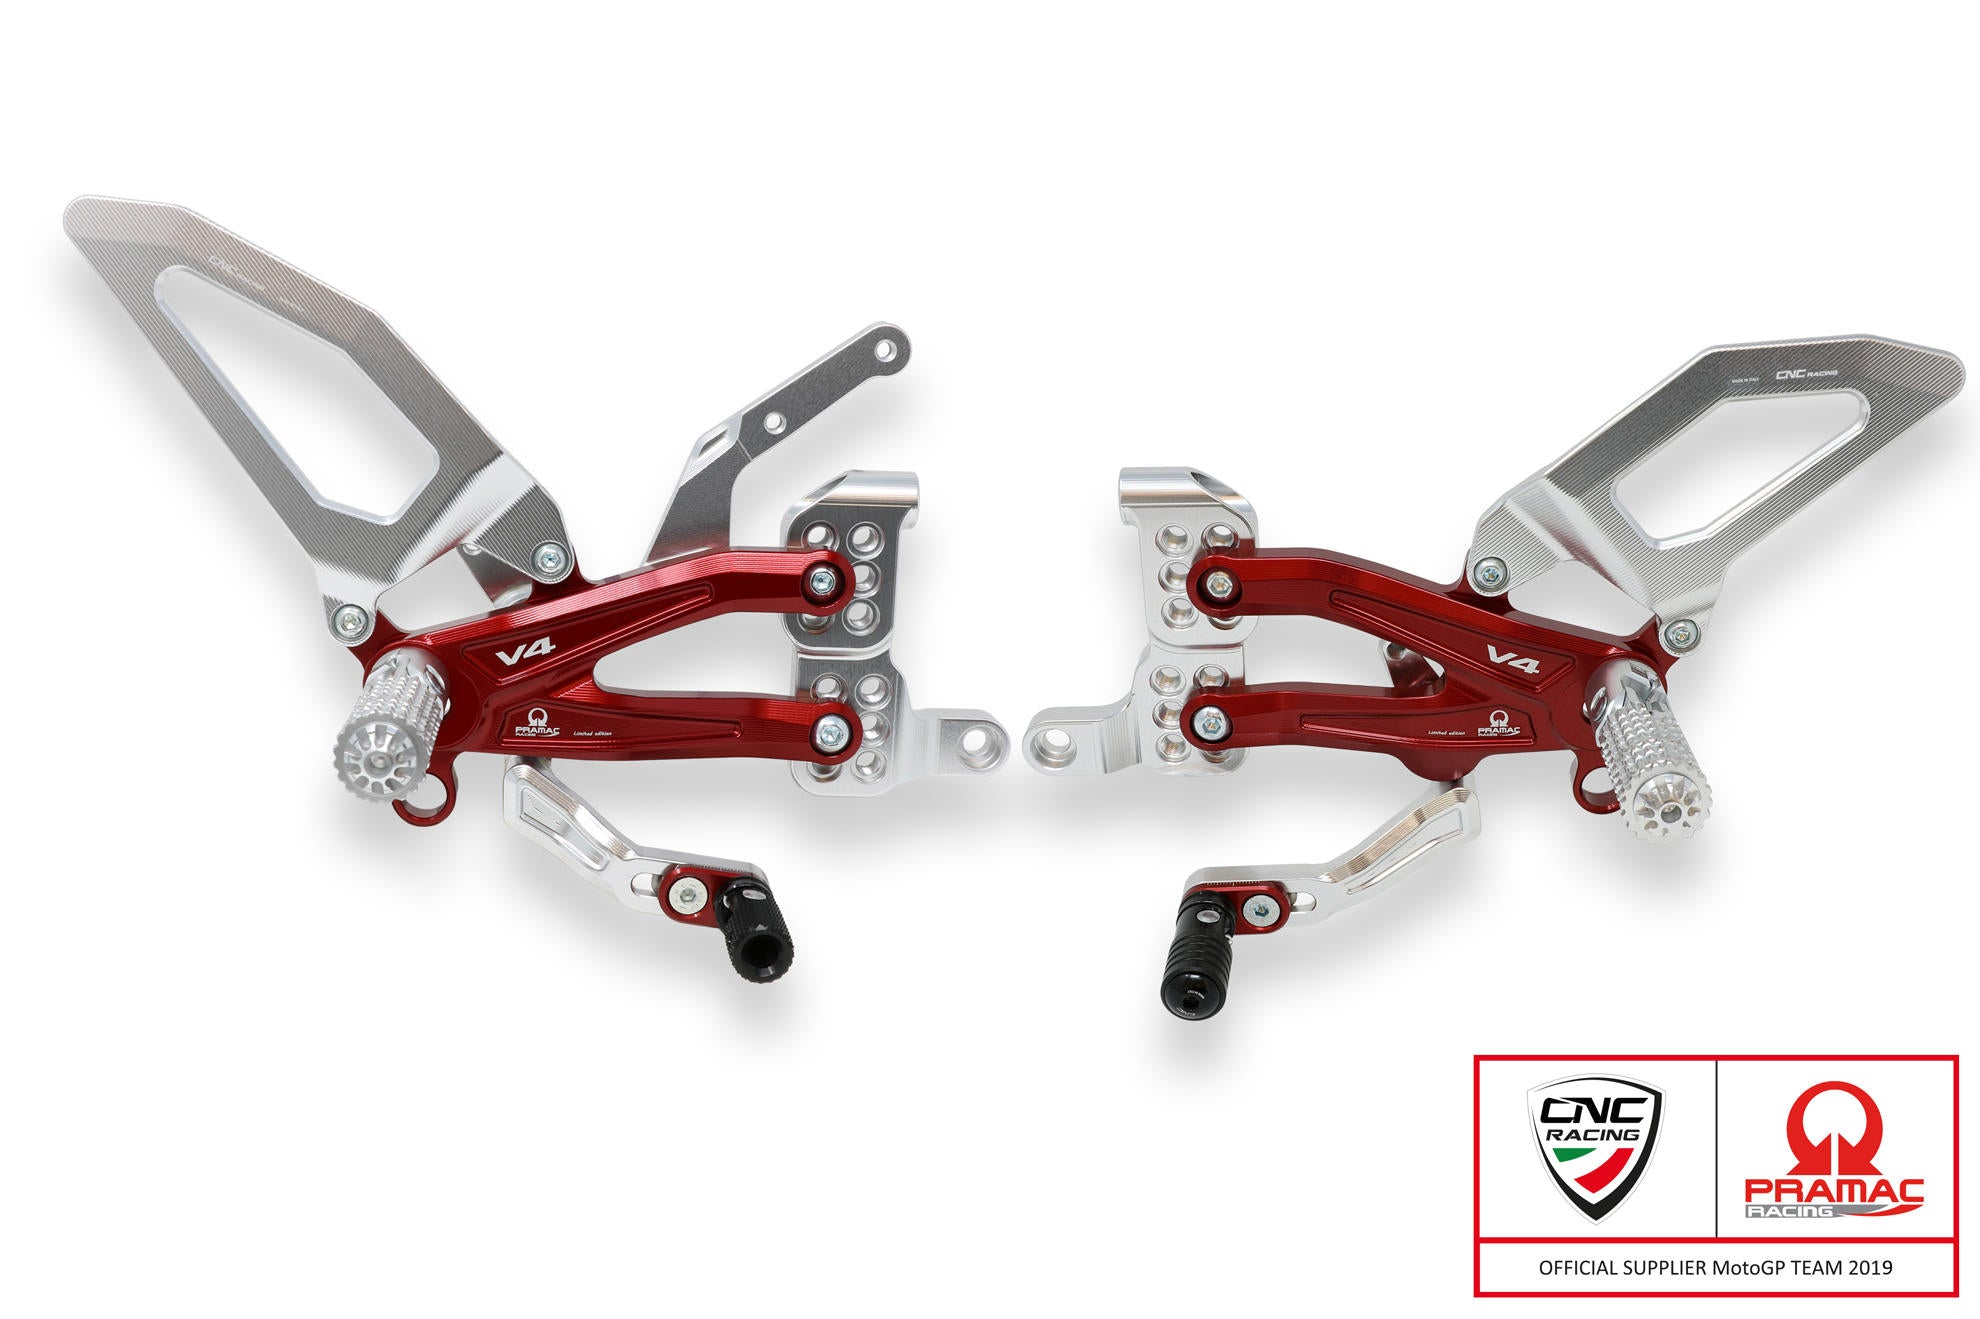 CNC Racing Pramac Adjustable Rearsets - Panigale V4/S, Rearsets, CNC Racing - Averys Motorcycles